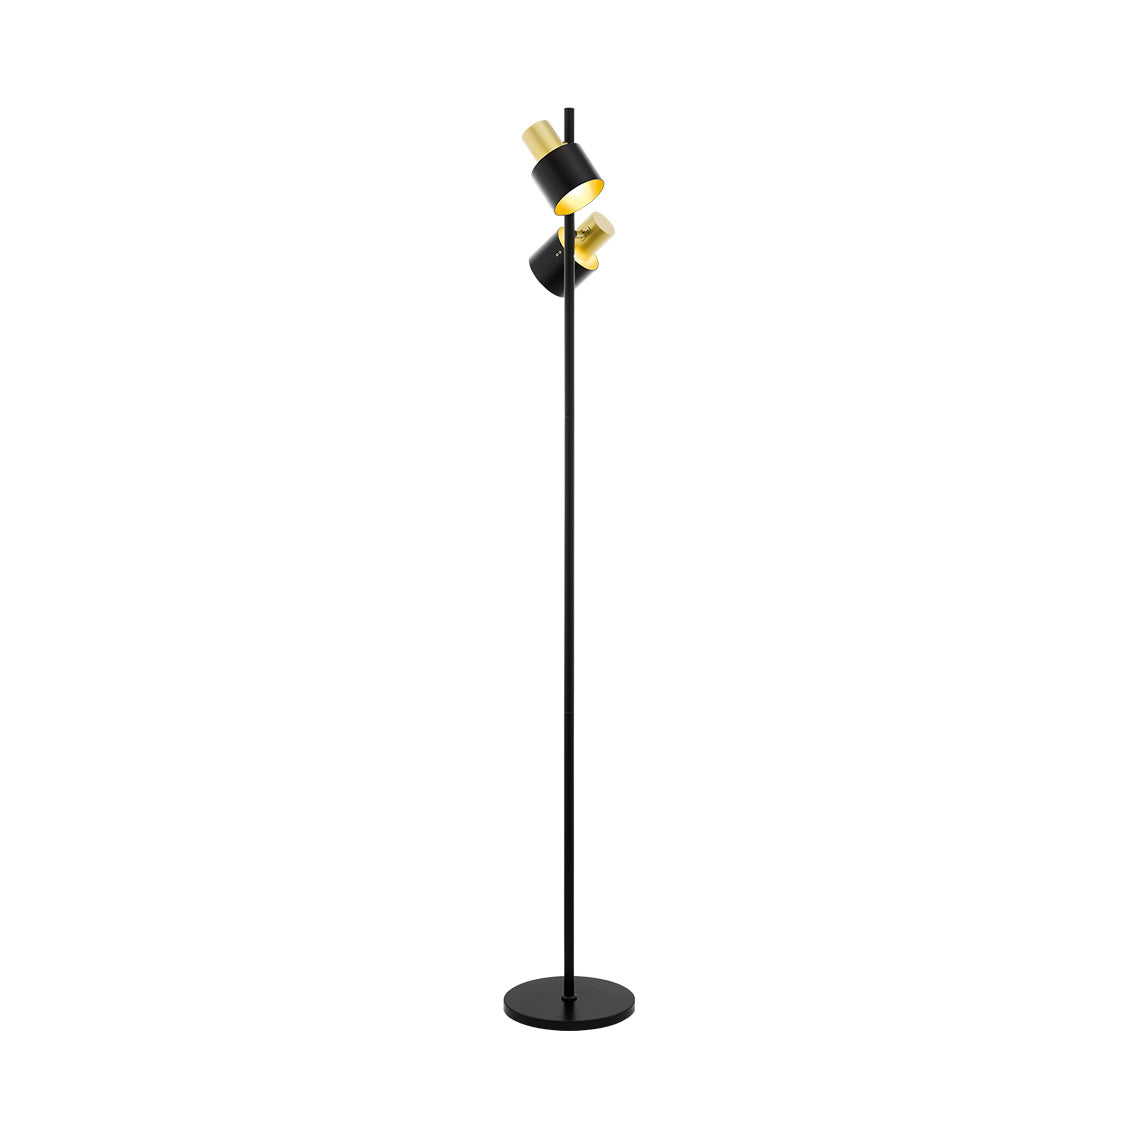 Fiumara Floor Lamp